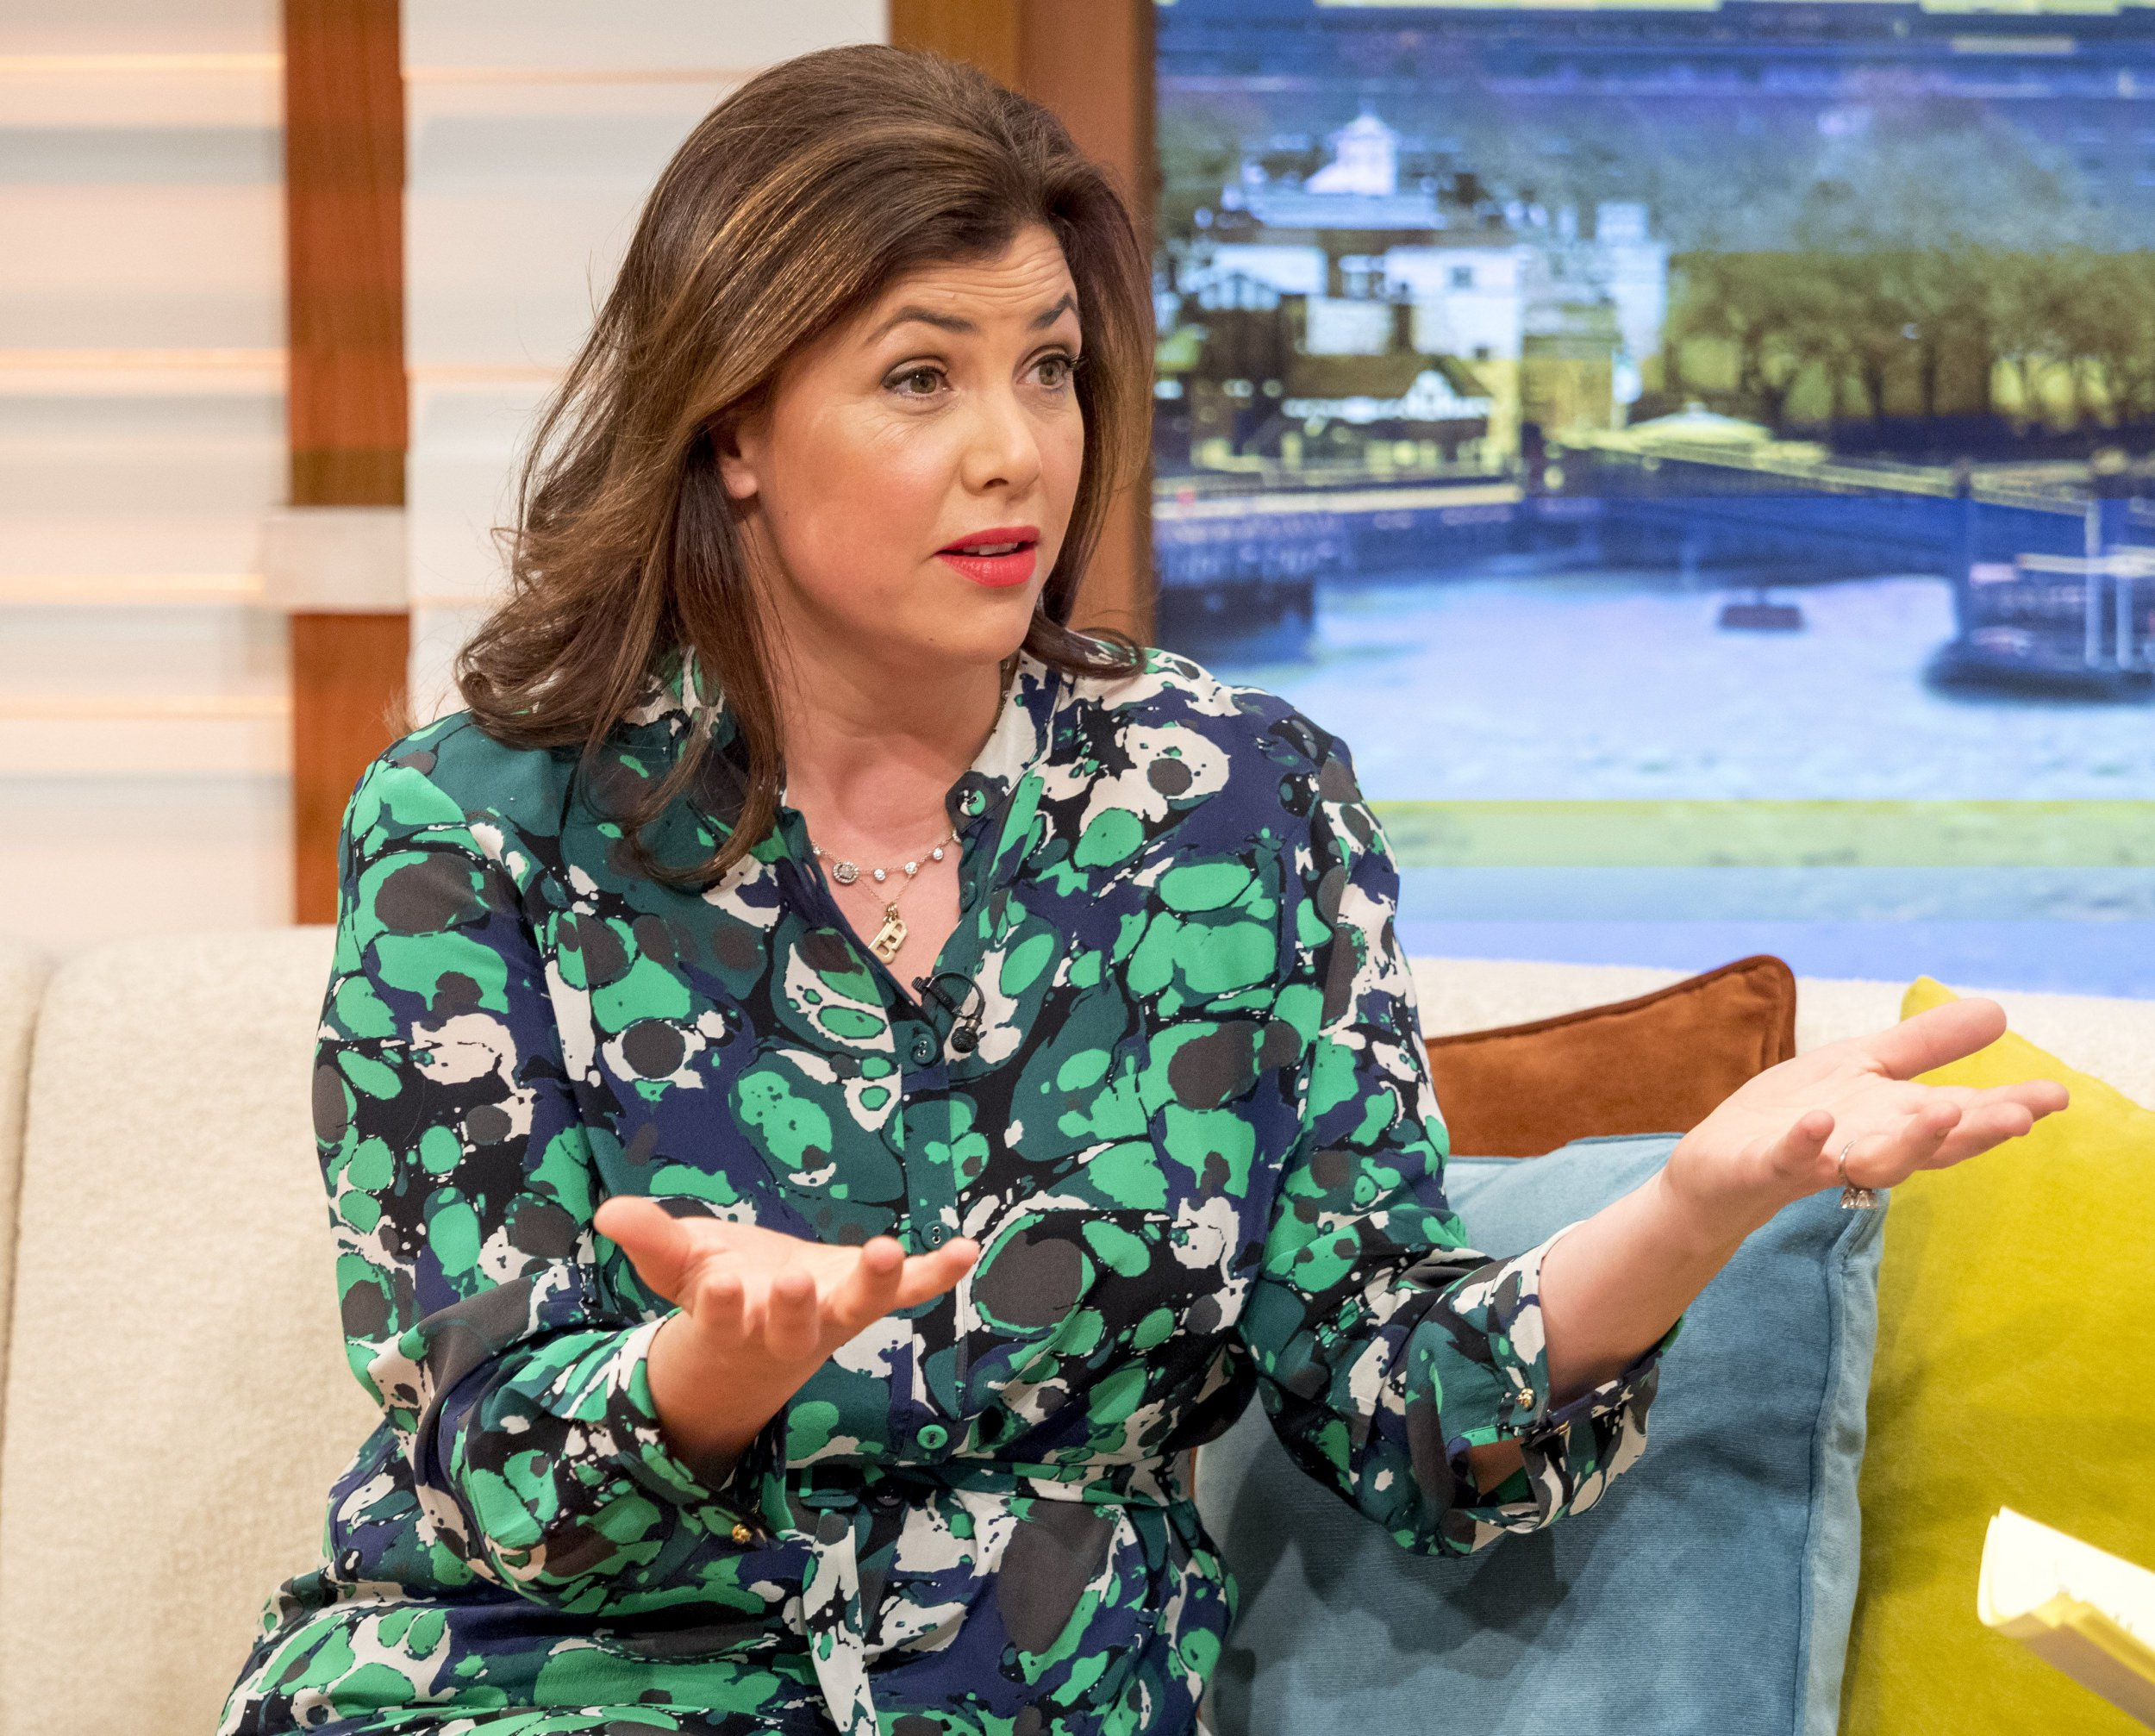 EDITORIAL USE ONLY. NO MERCHANDISING Mandatory Credit: Photo by Ken McKay/ITV/REX/Shutterstock (8466149bi) Kirstie Allsopp 'Good Morning Britain' TV show, London, UK - 03 Mar 2017 LITTER BRITAIN KIRSTIE KEEPS US CLEAN Three-quarters of people think that litter is a massive British problem according to a poll for Good Morning Britain. But only 63% would pick other people's mess up. And surprisingly, only 7% of people admit to have ever dropping it. Keep Britain Tidy is urging half a million of us to get out and do just that - But are we willing to get our hands dirty? We put Britain's litter-picking skills to the test...